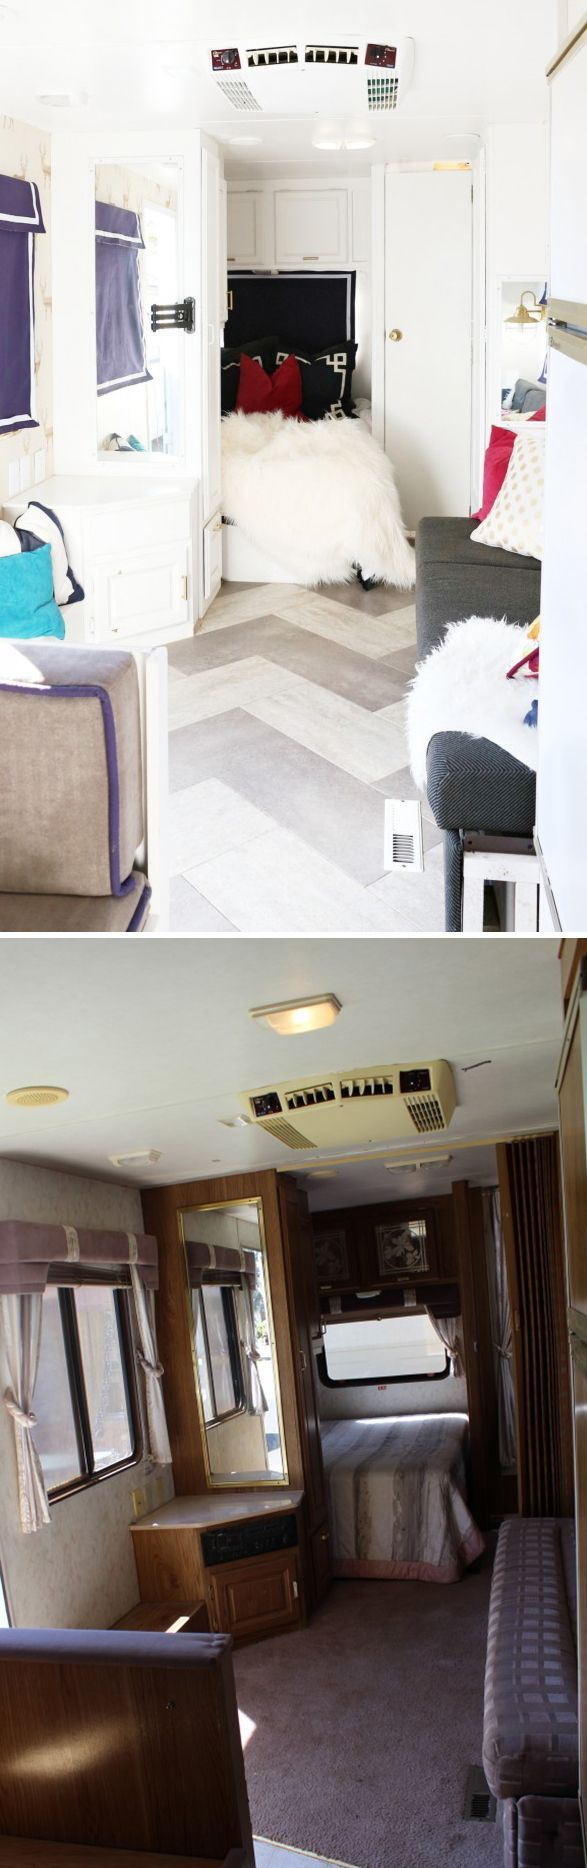 This cool 1990s camper was in need of a complete trailer remodel. See how installing peel-and-stick vinyl flooring was a easy way to make a big improvement.